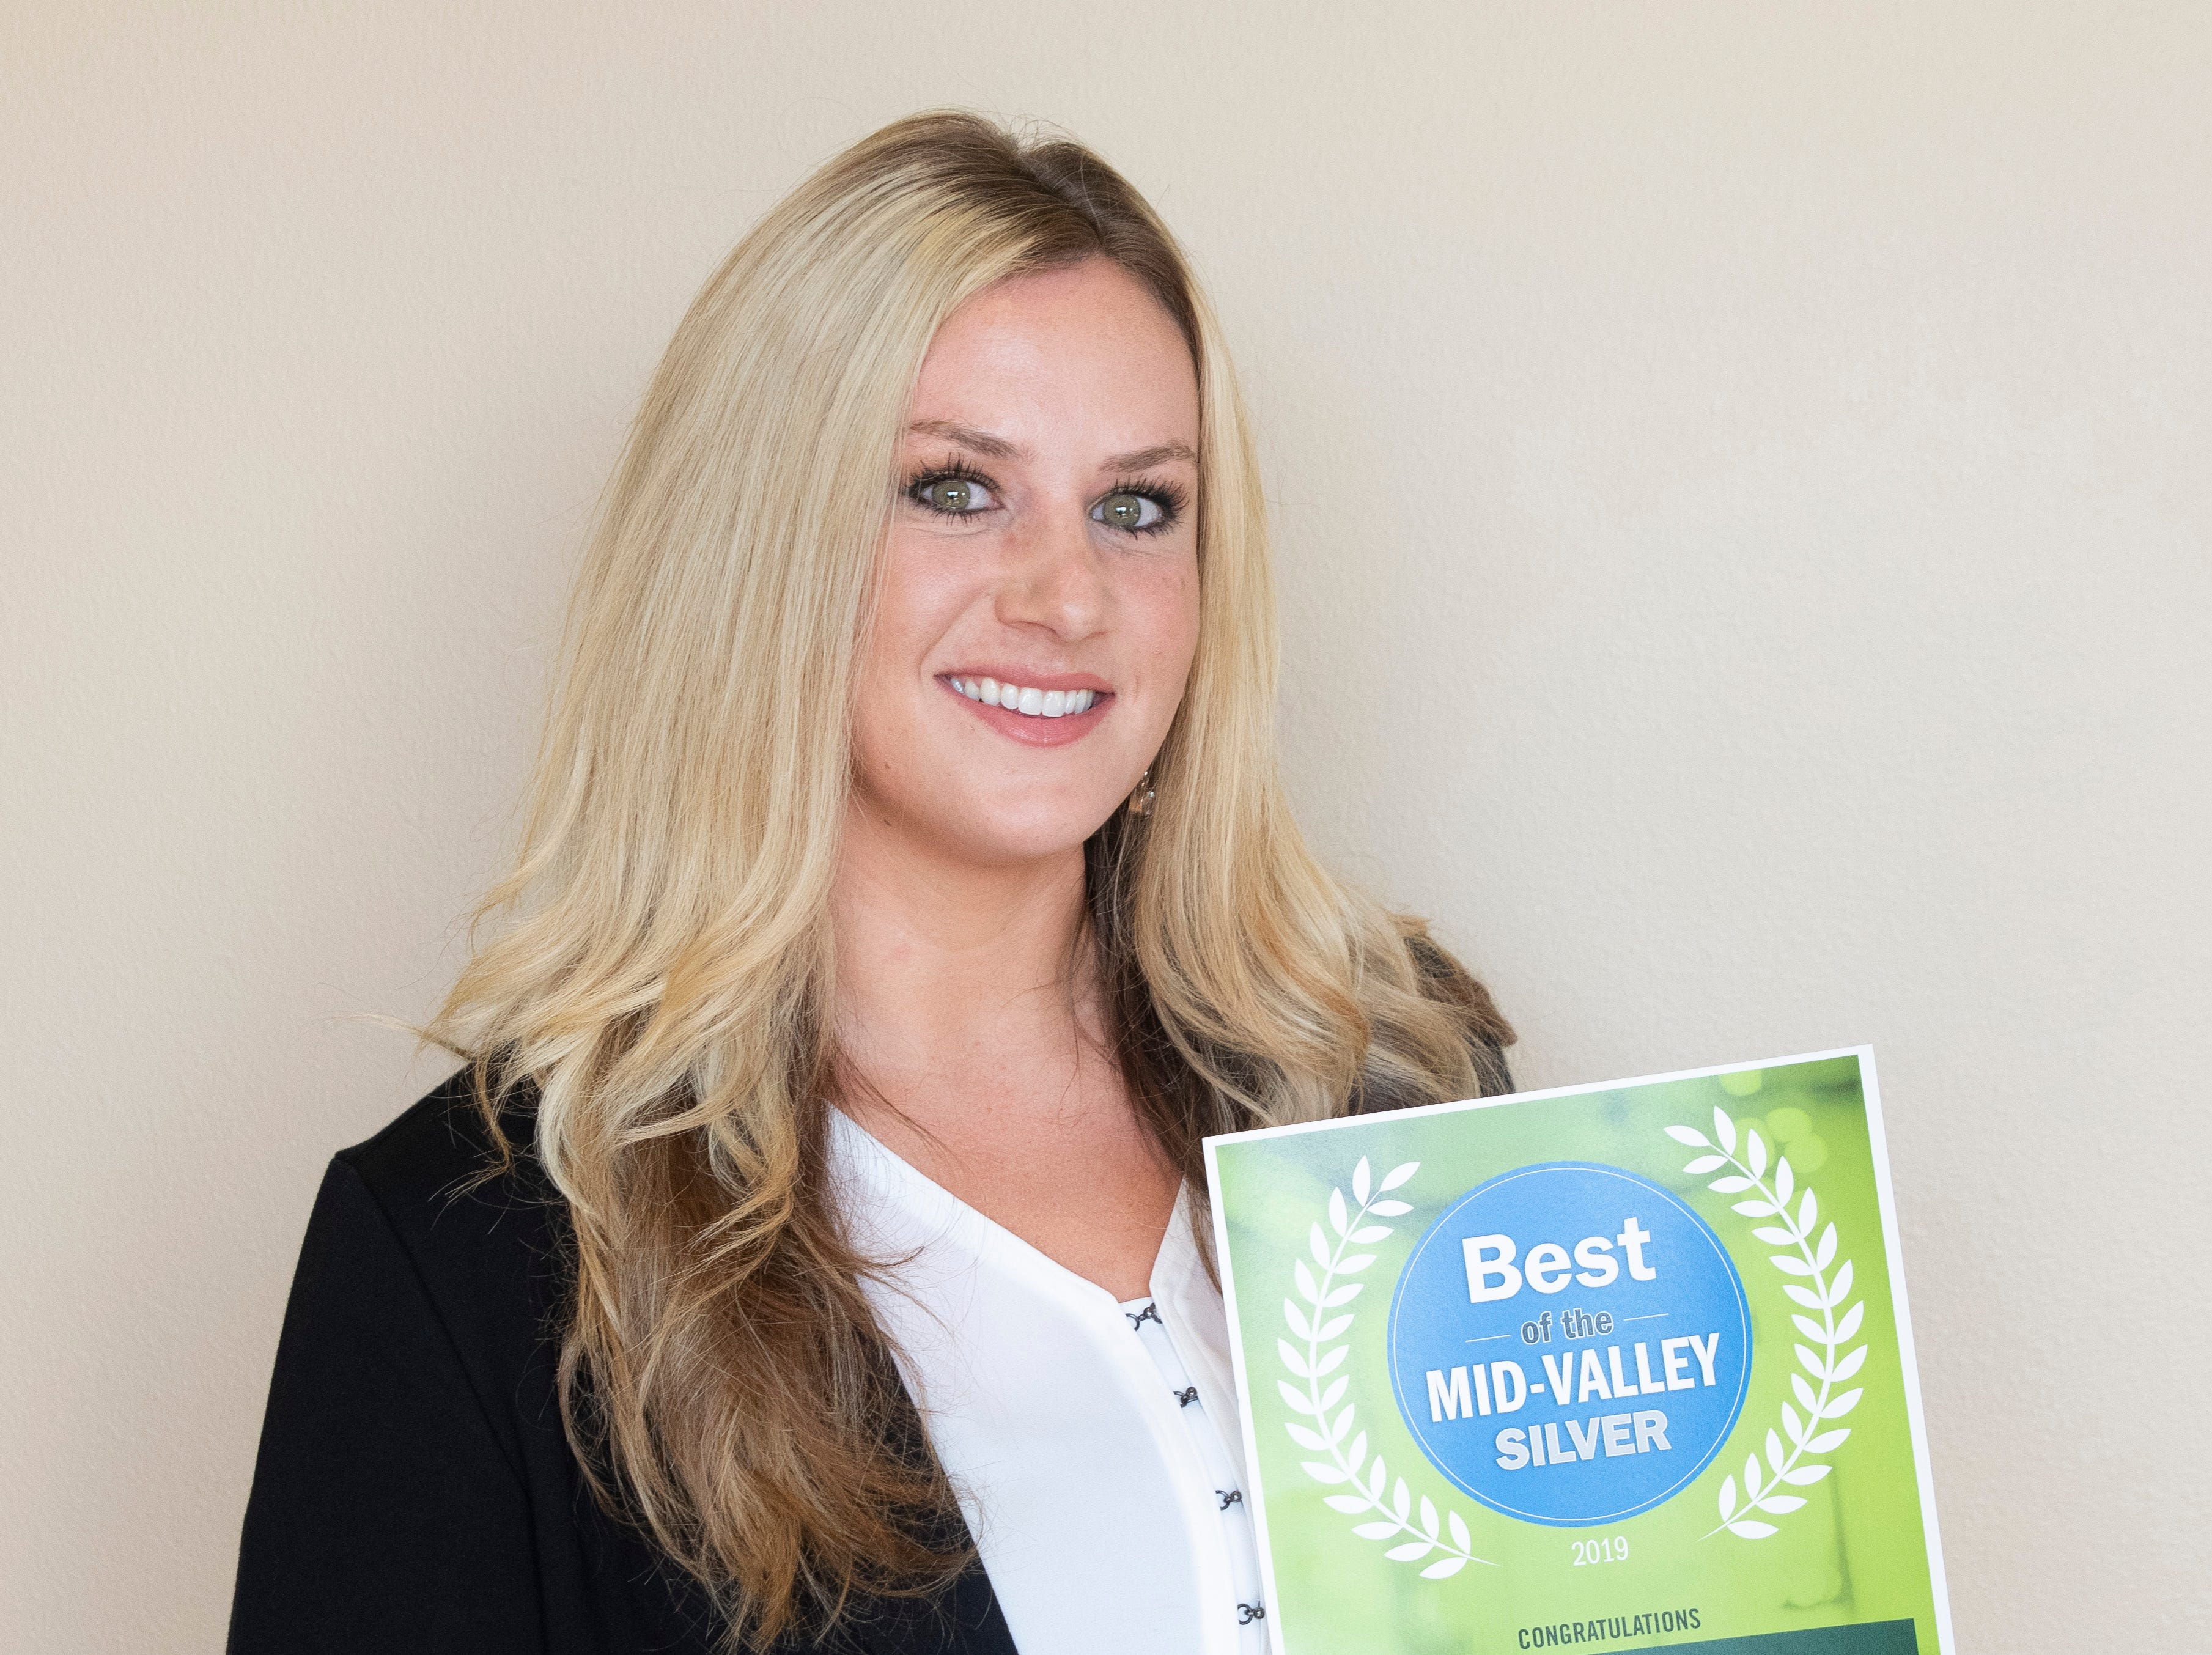 Caitlin Davis of Edward Jones won silver for Best Financial Advisor in the 2019 Best of the Mid-Valley.